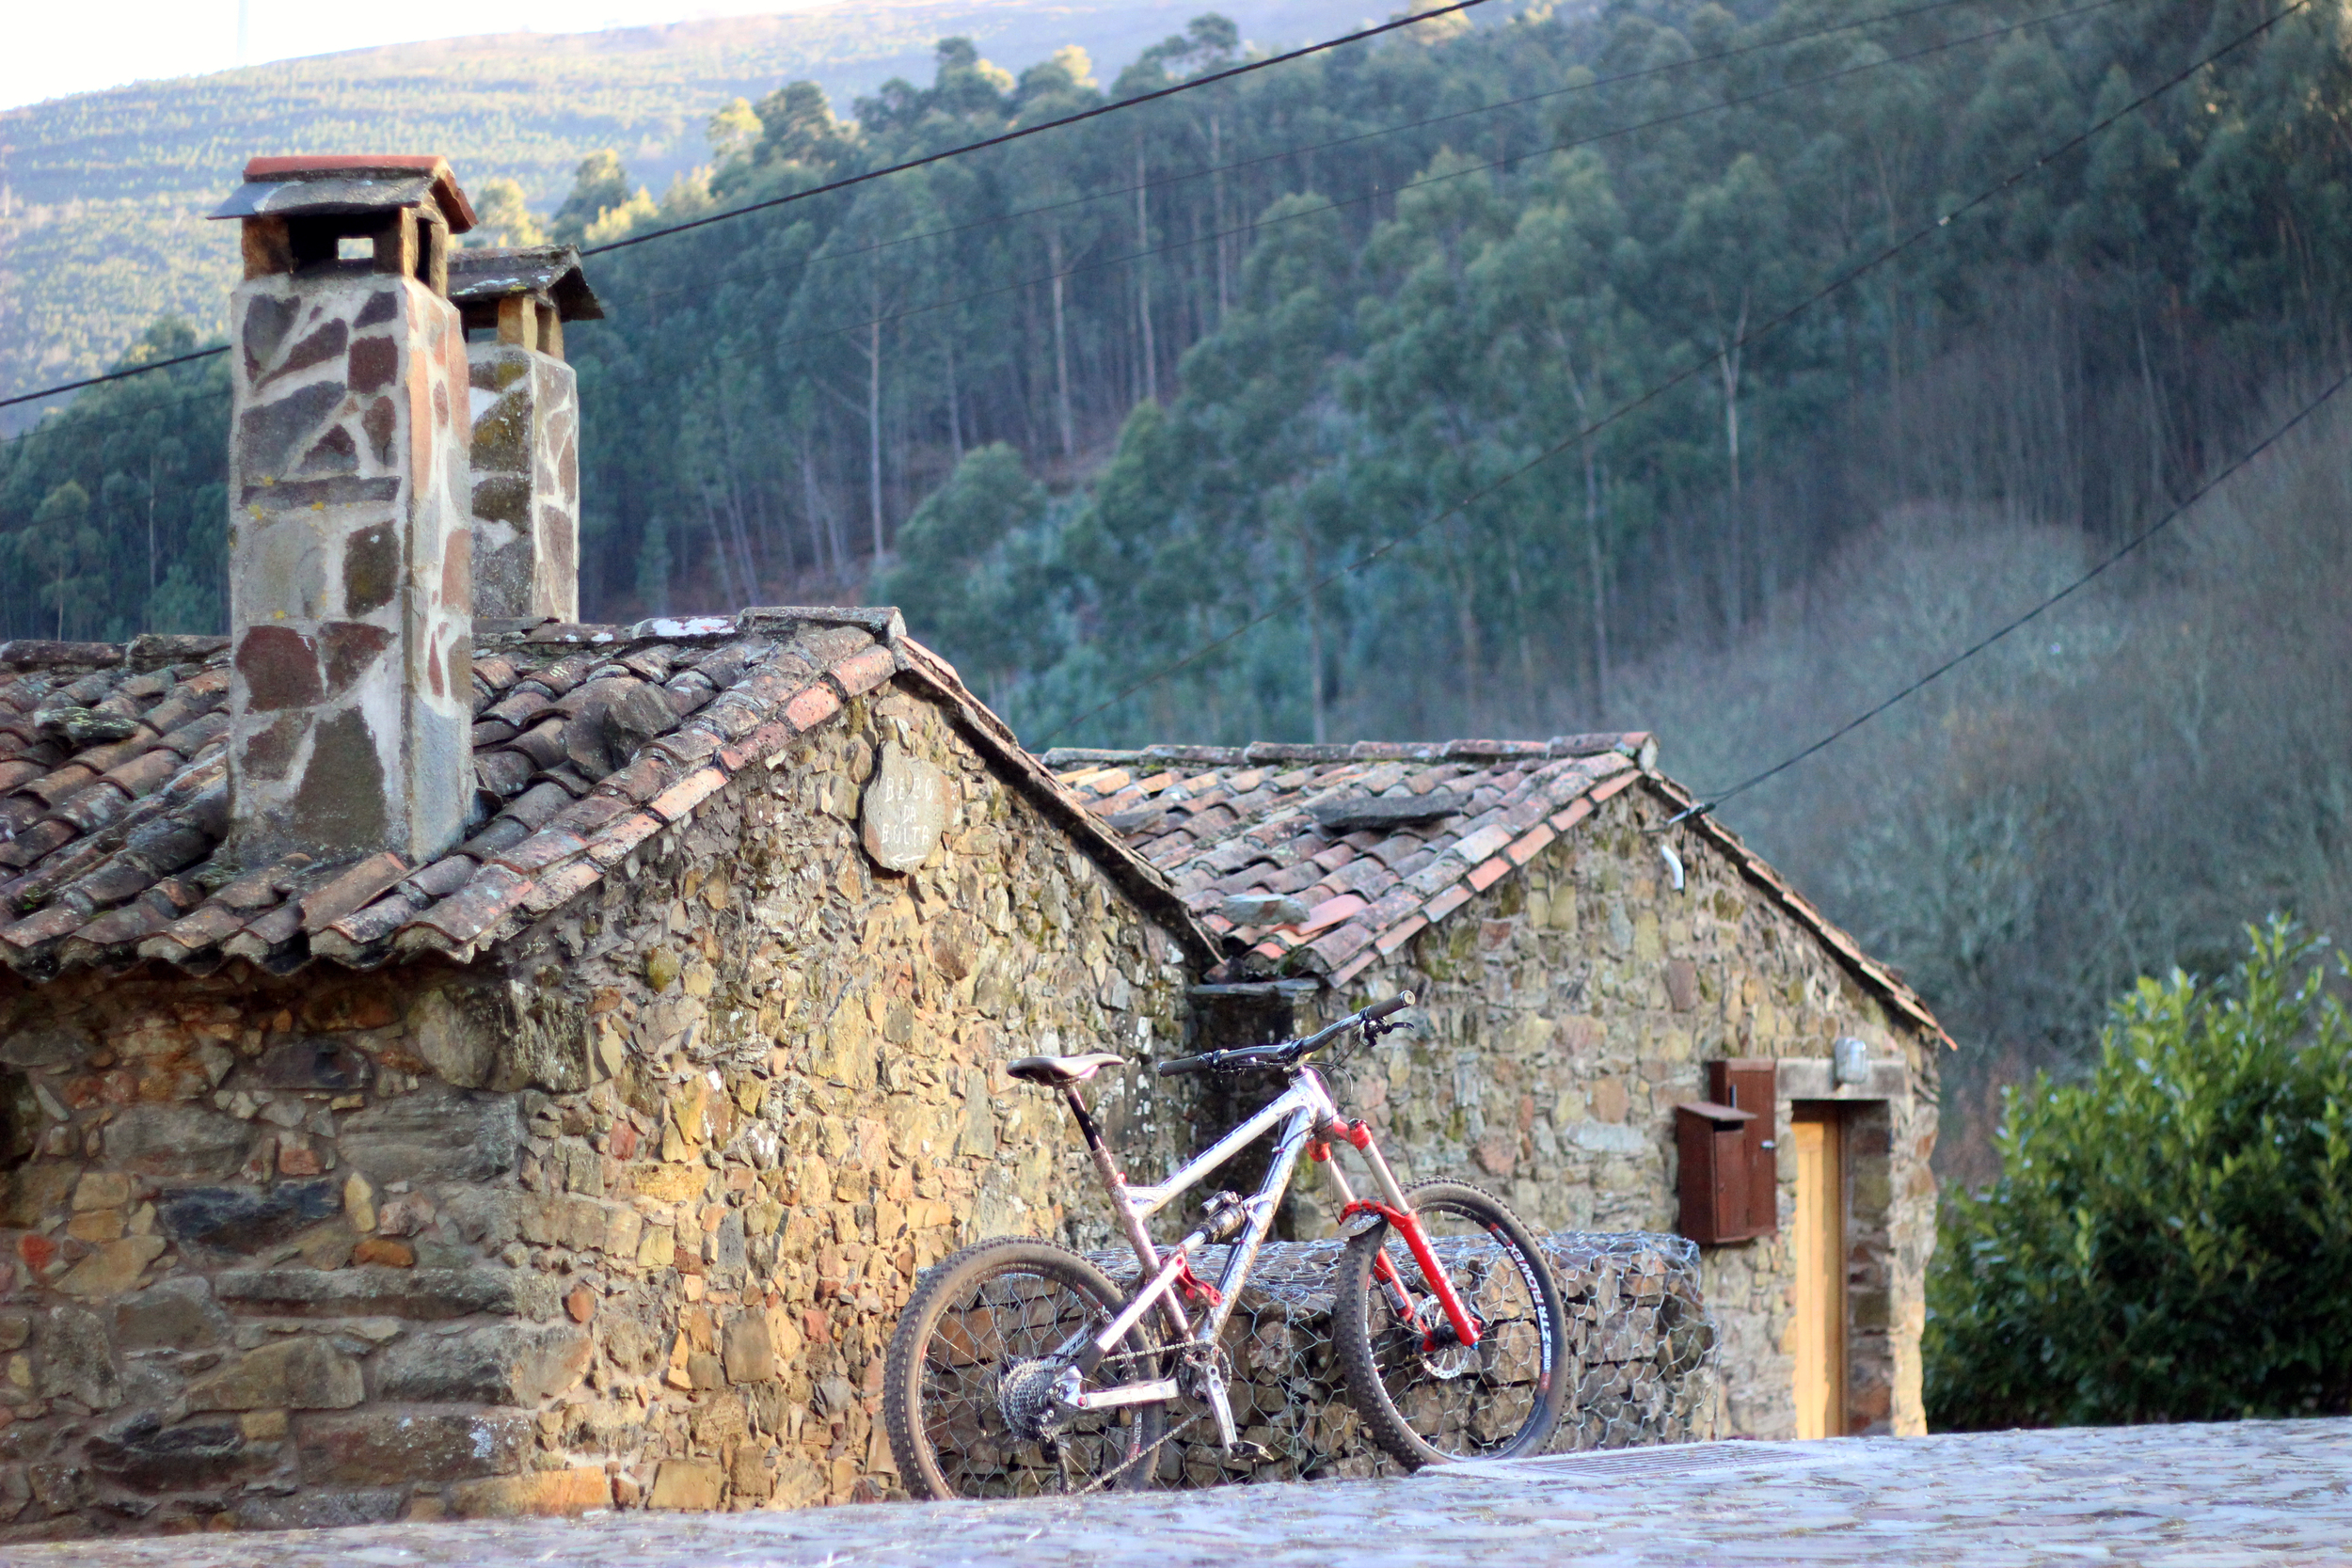 Schist village of Gondramaz in tune with the bike